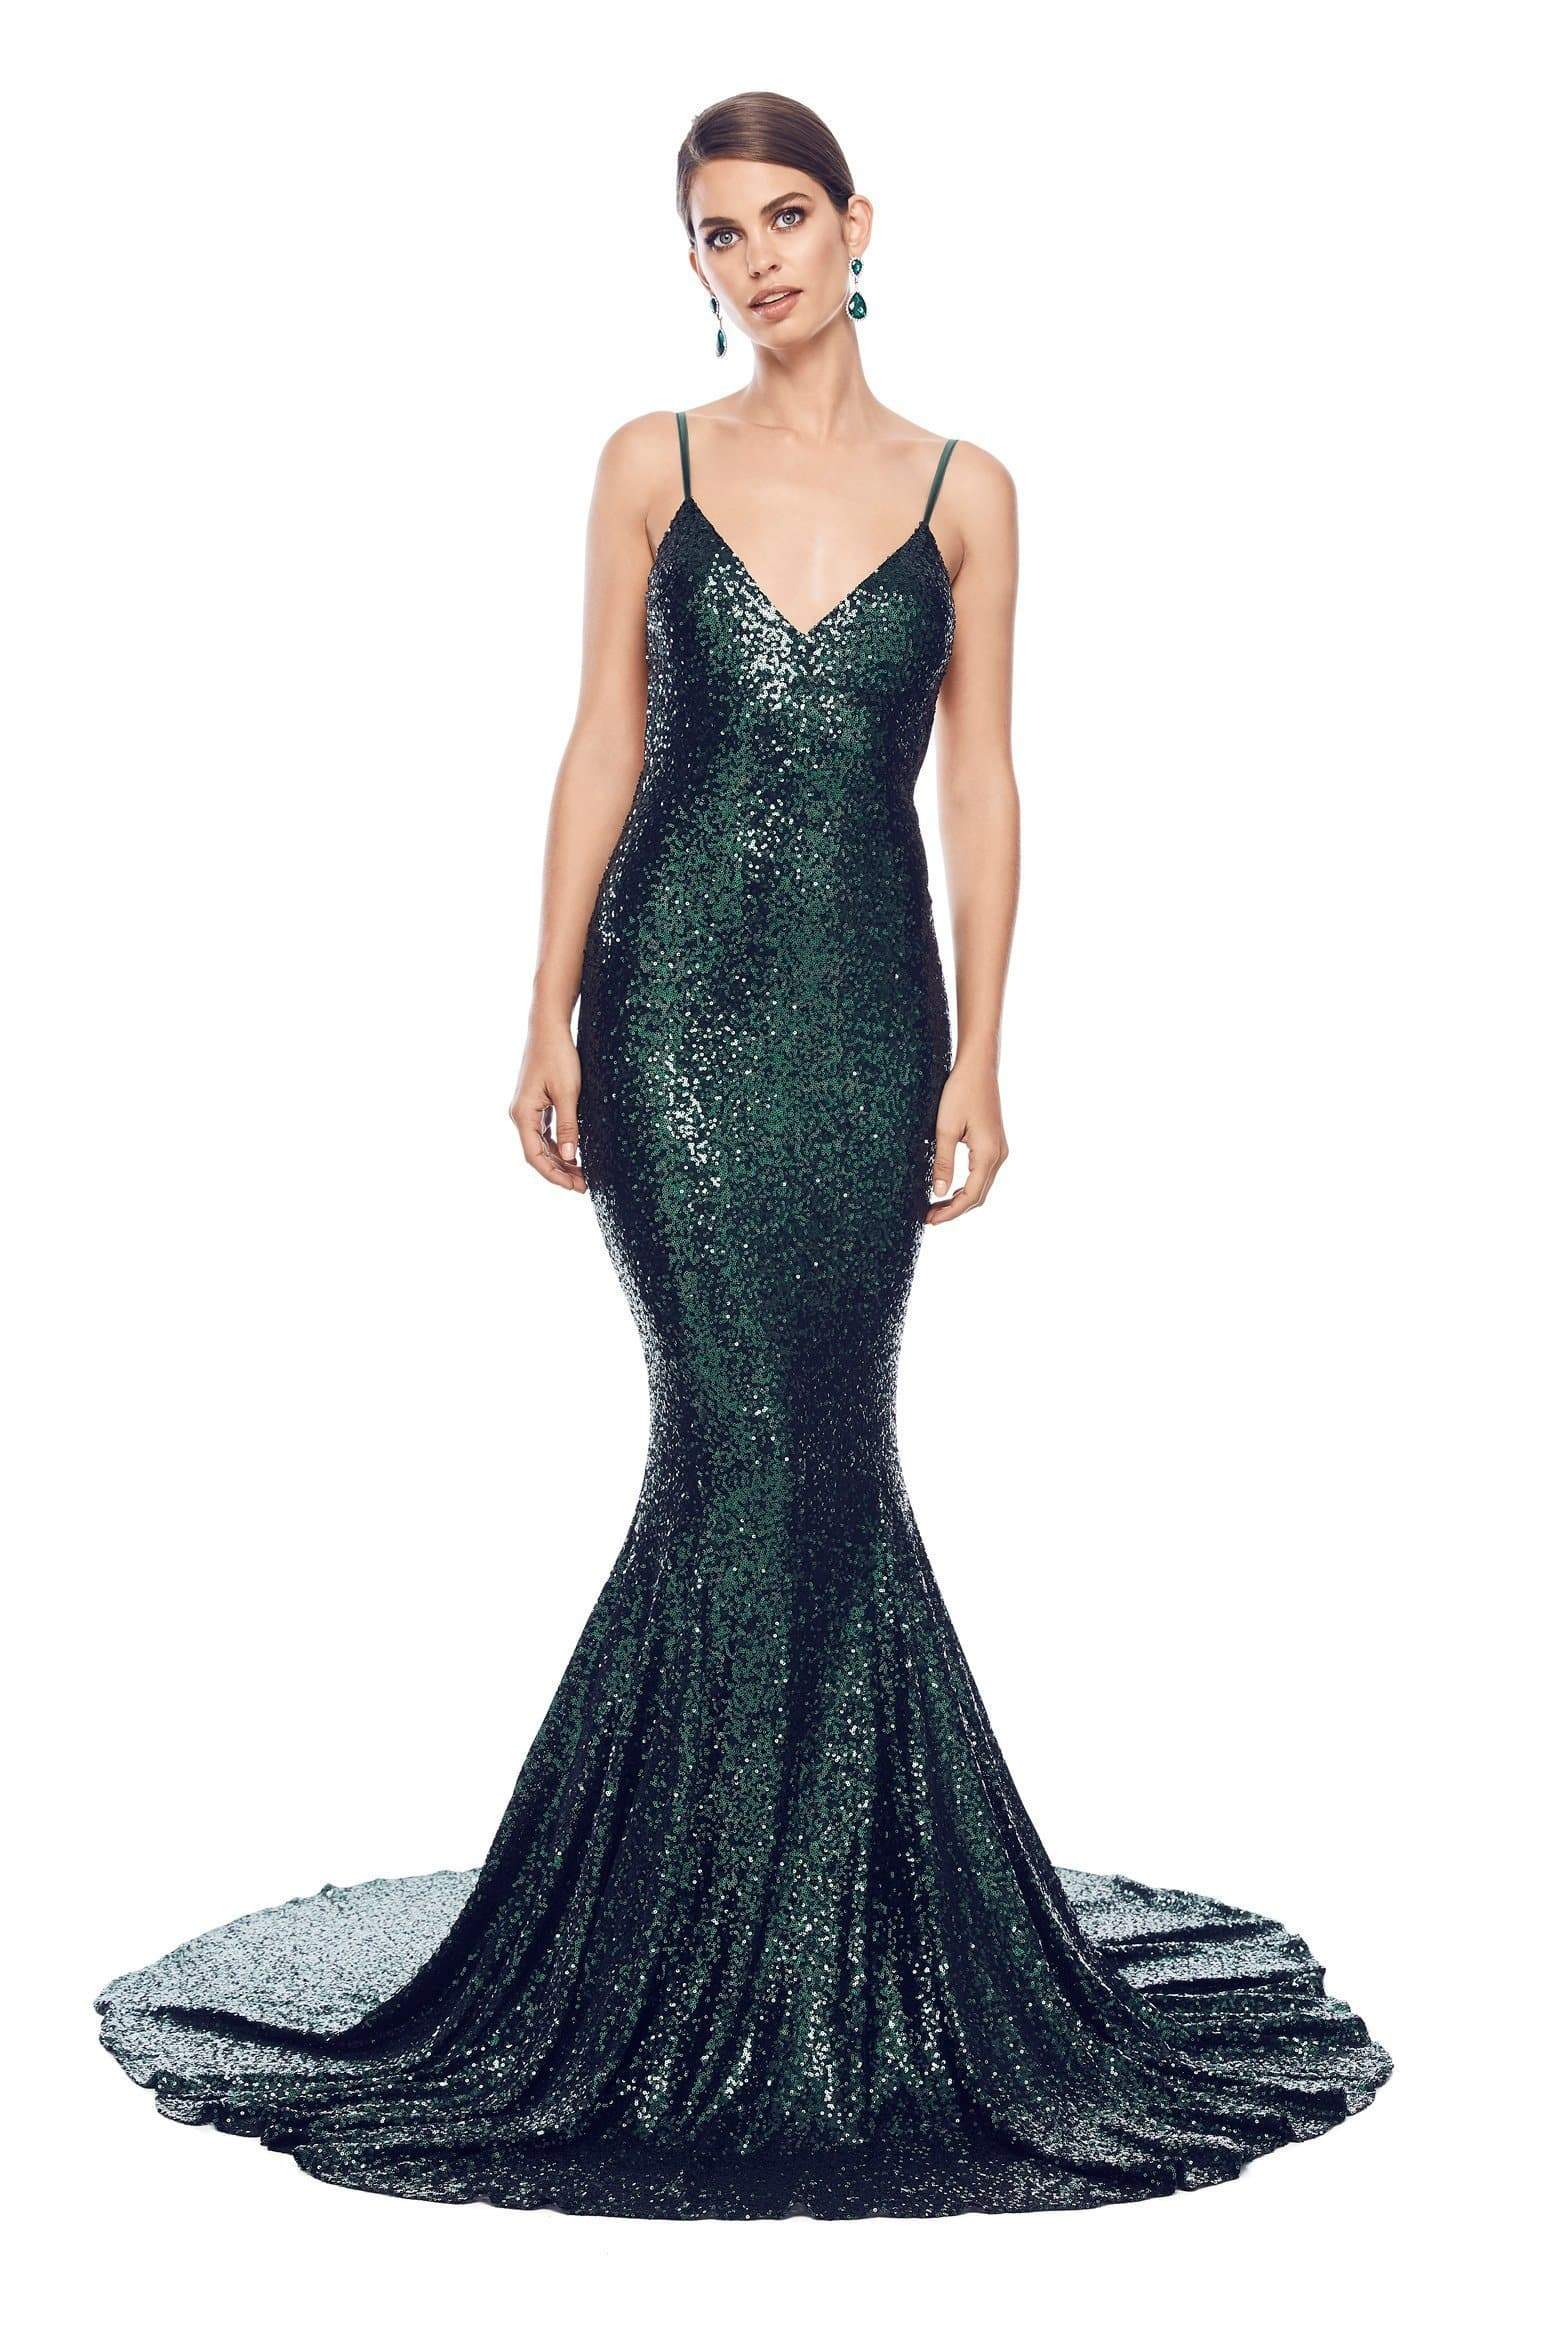 Yassmine Luxe - Backless Emerald Sequin Gown with Plunge Neckline